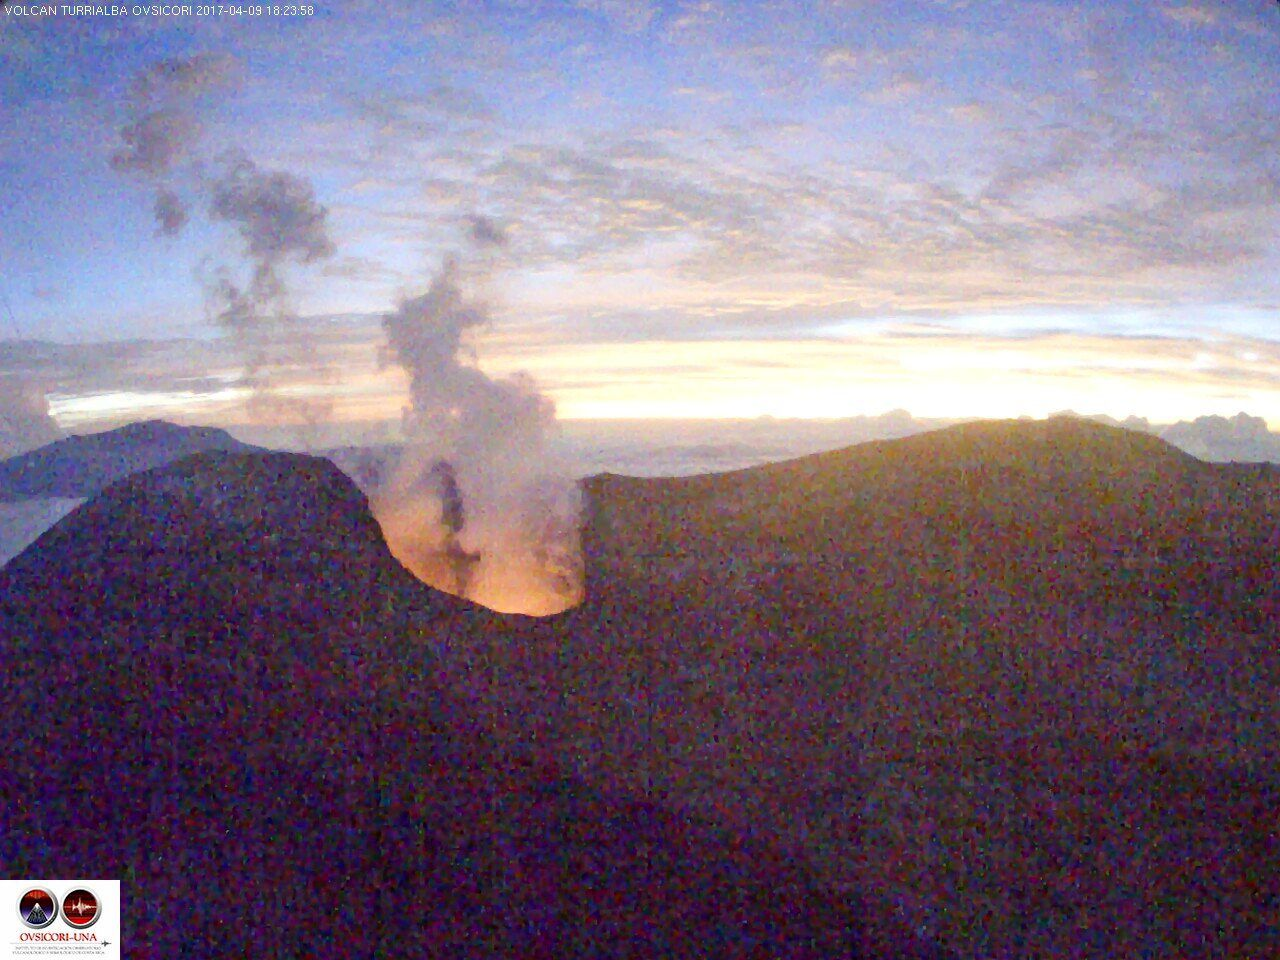 Turrialba - incandescence in the crater on 09.04.2017 / 18h24 - webcam Ovsicori